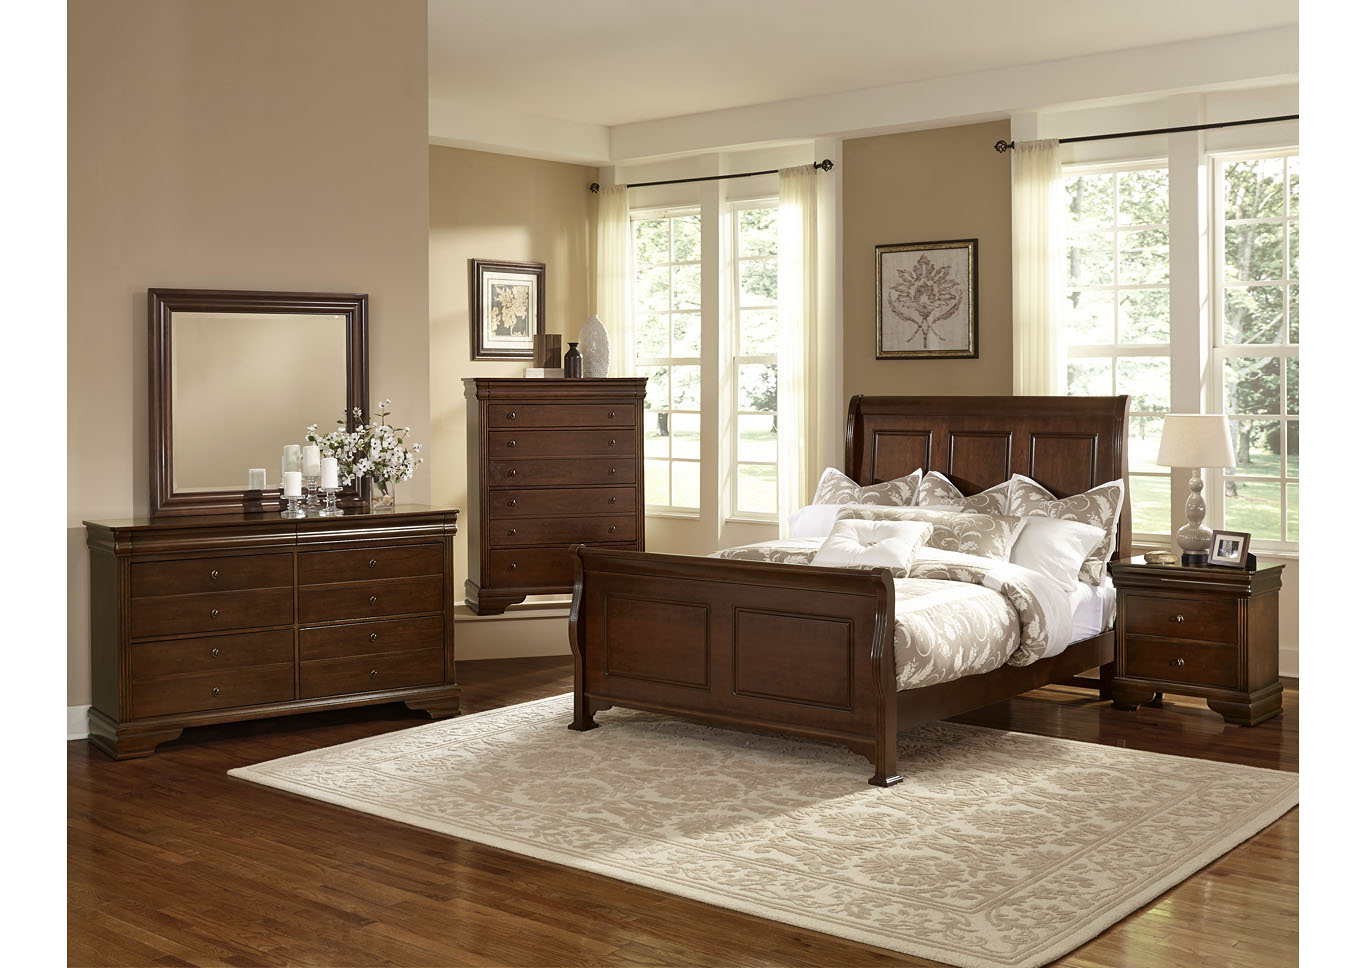 French Market French Cherry King Poster Bed w/ Dresser and Mirror,Vaughan-Bassett